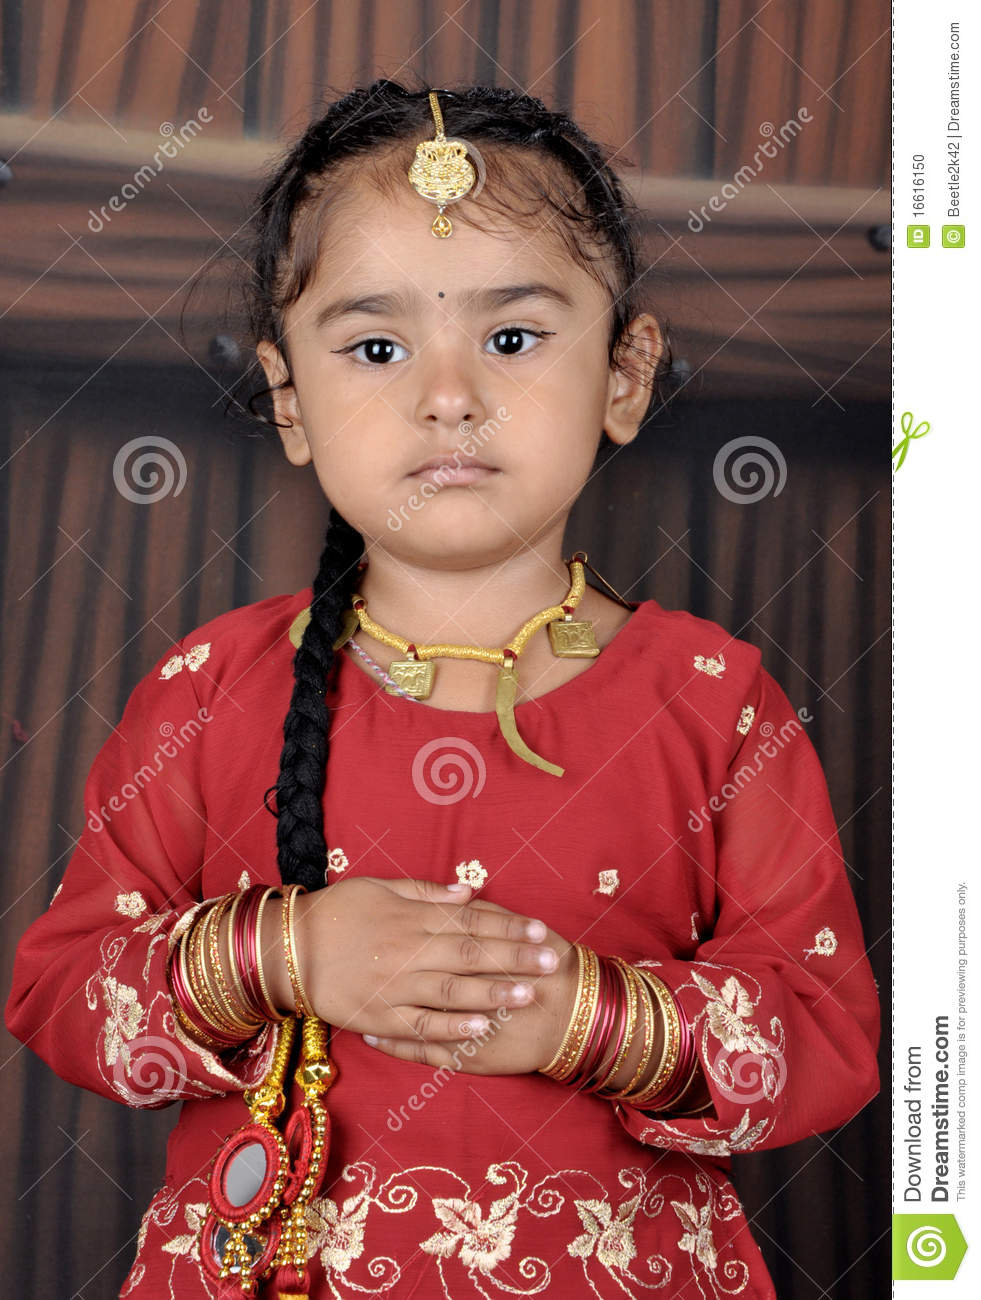 punjabi little child stock photo. image of jewelry, cute - 16616150